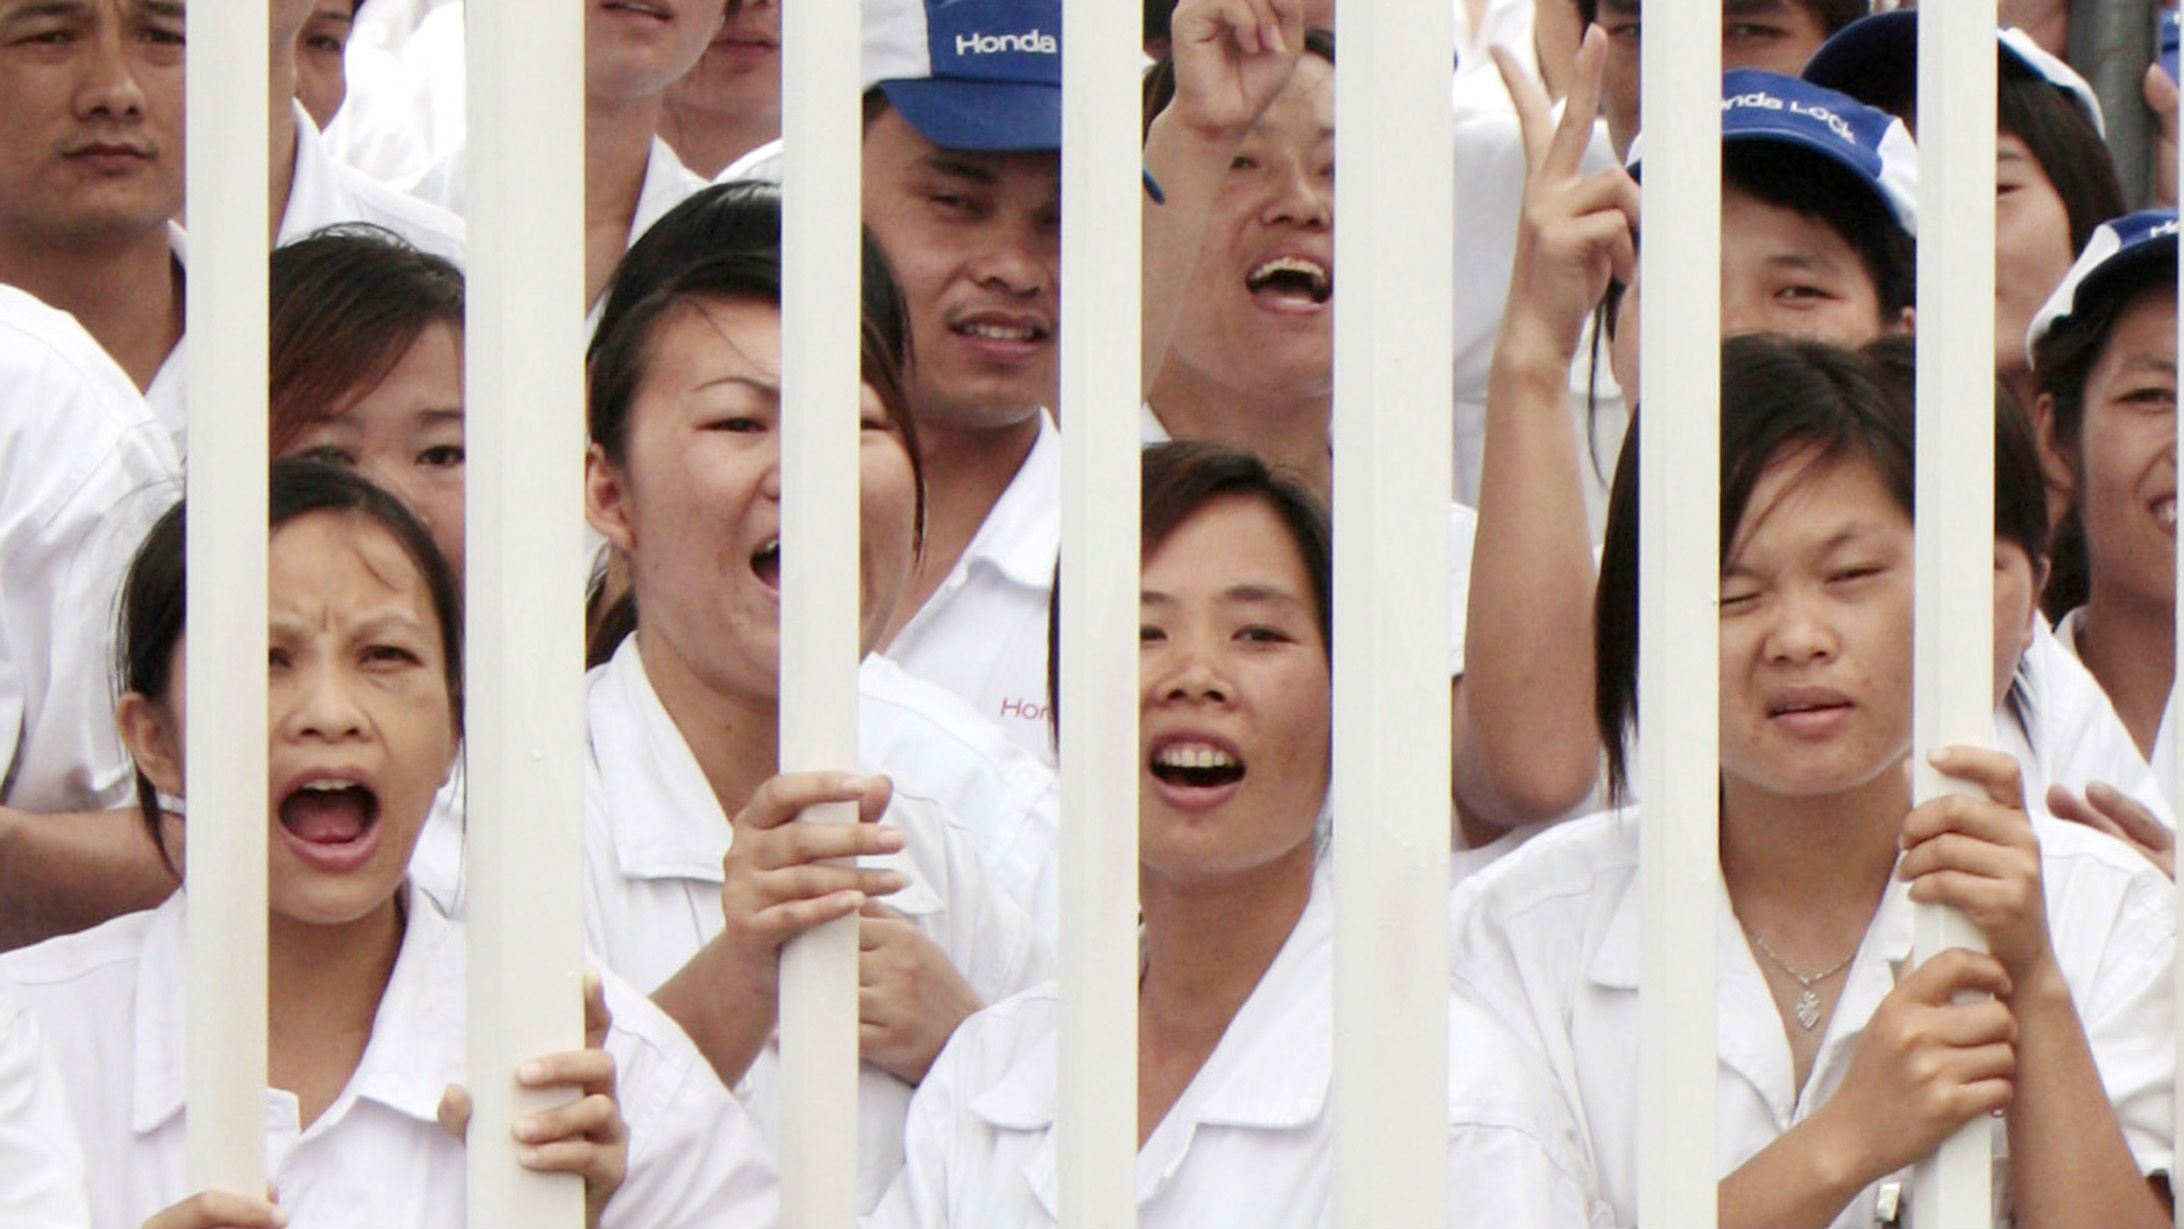 Workers react as they stand by a fence during a strike at a Honda Motor vehicle manufacturing plant in Zhongshan, Guangdong province June 10,2010. Honda Motor said it would resume building cars in China on Friday after a supplier of exhaust systems contained a labour dispute, but workers at another parts maker remained on strike. REUTERS/Tyrone Siu (CHINA - Tags: TRANSPORT BUSINESS)